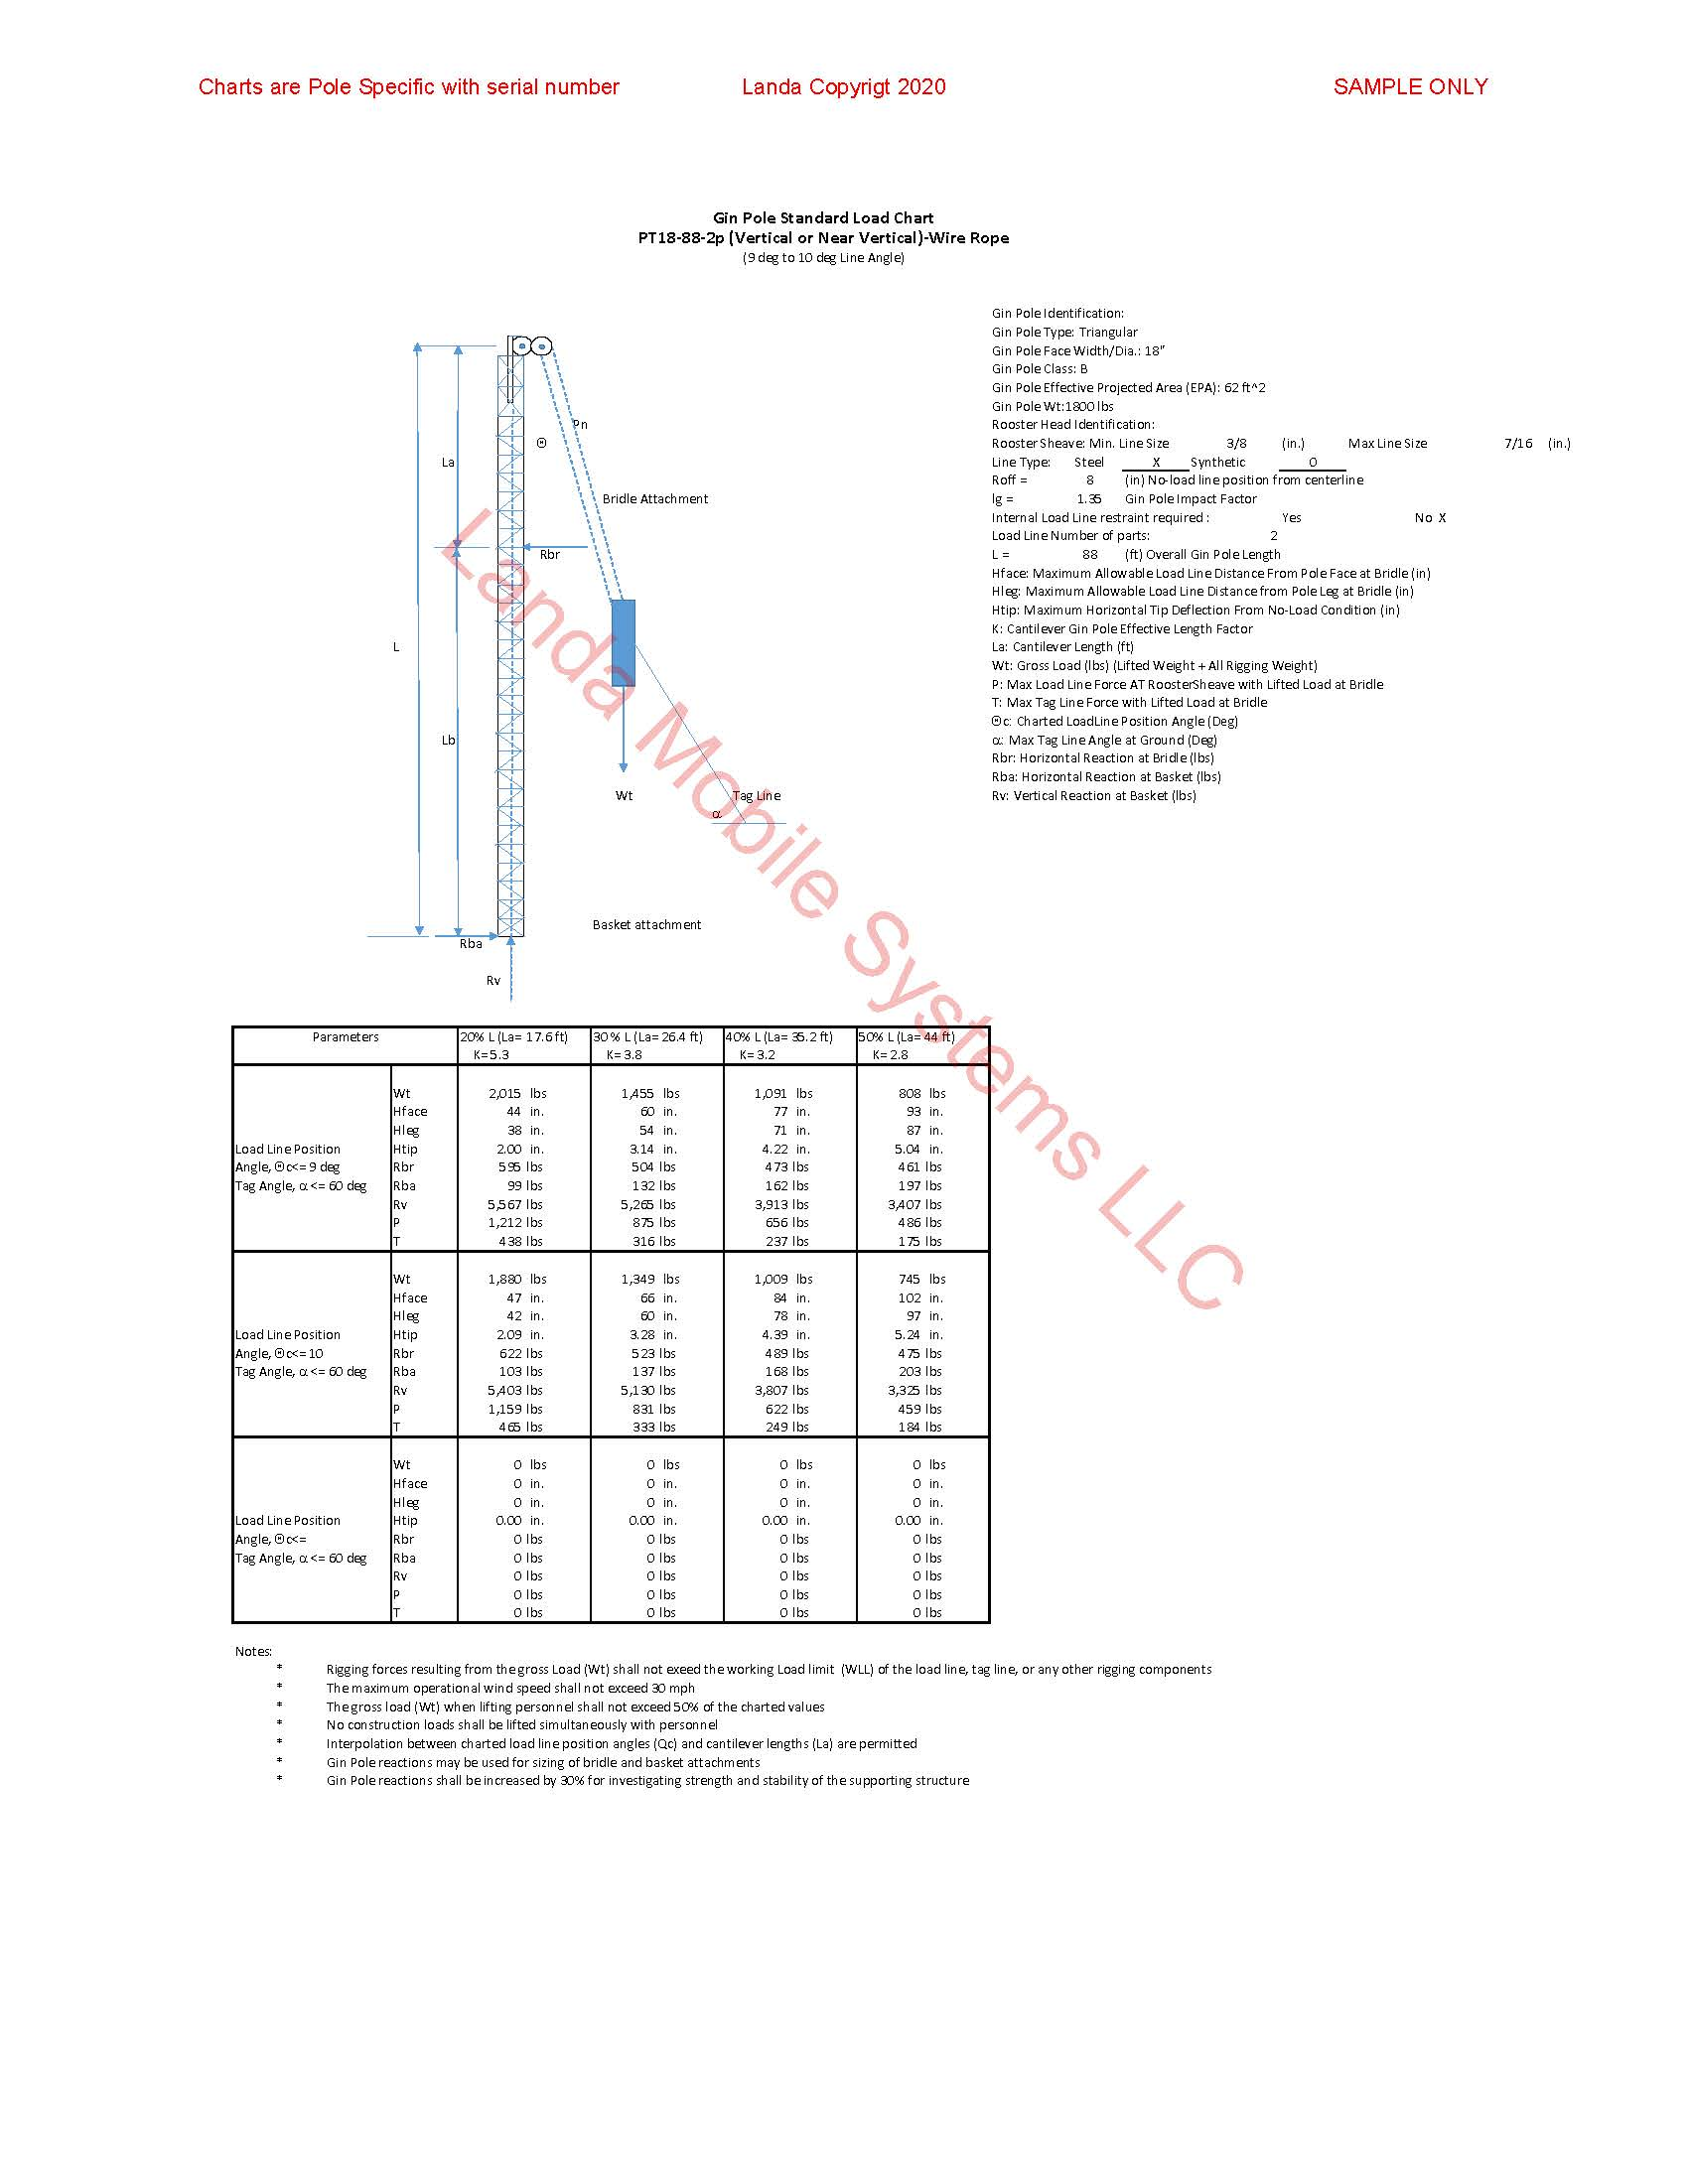 LMS-PT18 GIN POLE, your most trusted manufacture in the